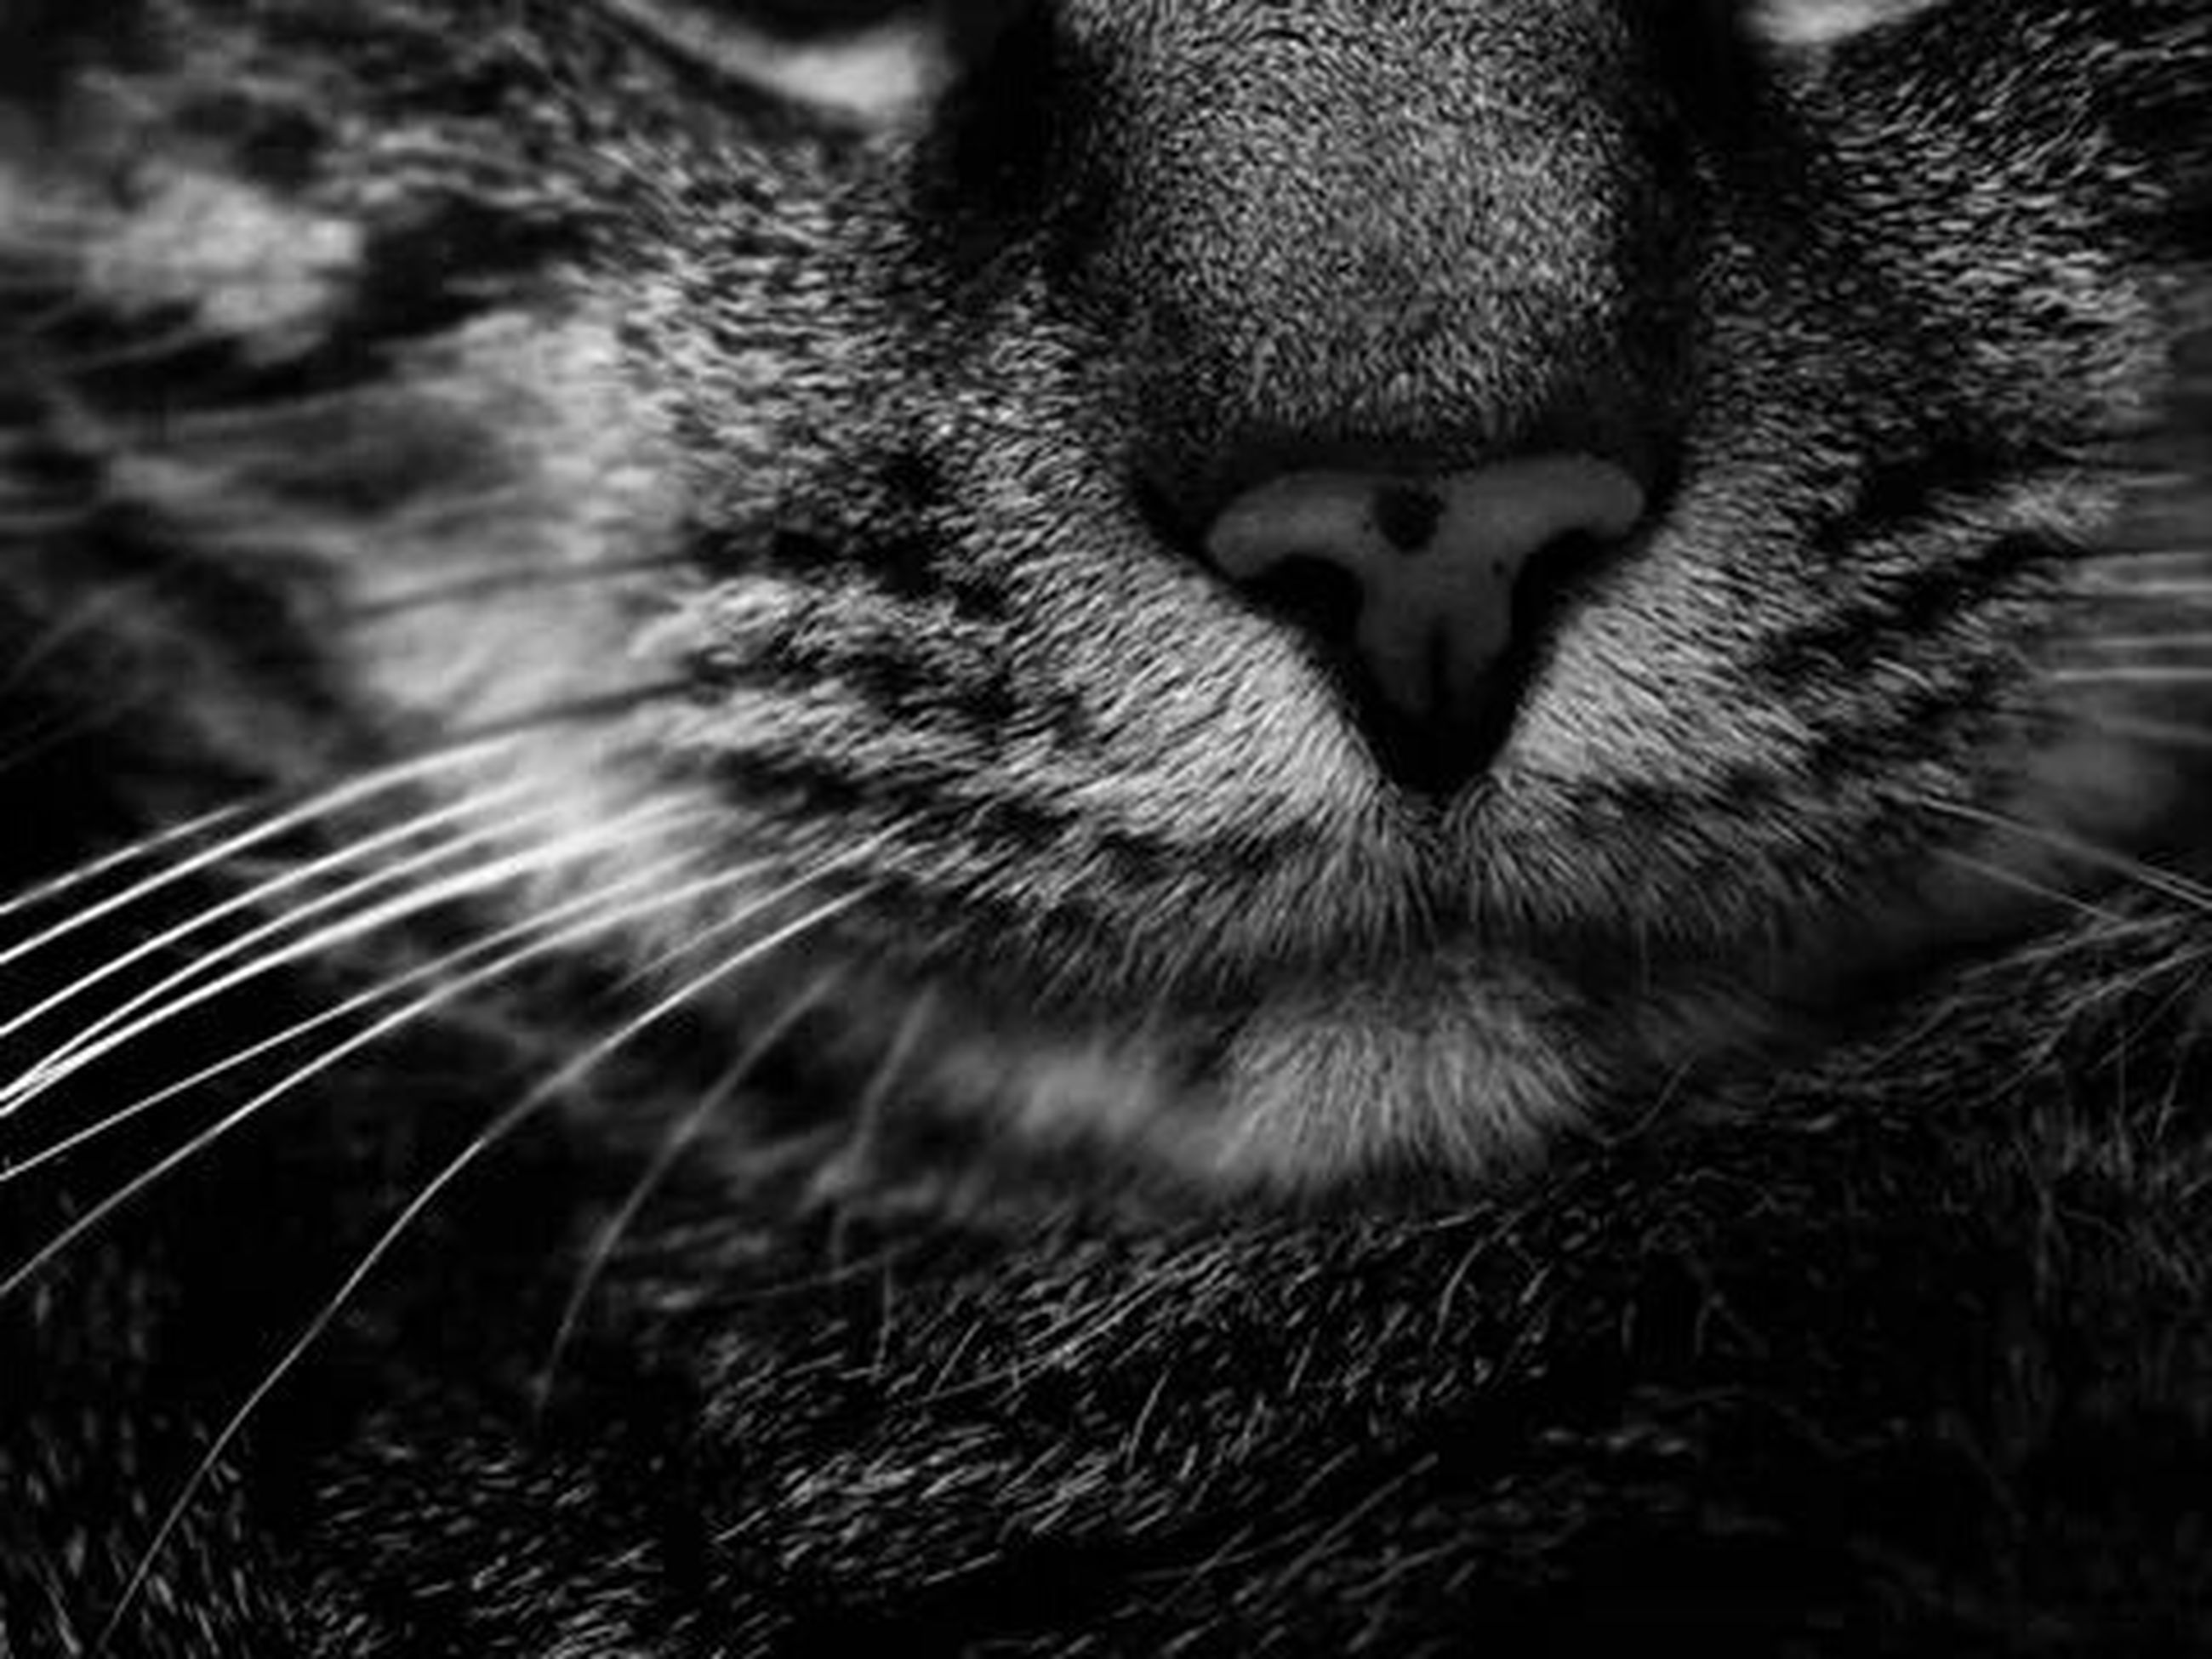 one animal, pets, mammal, animal themes, domestic animals, domestic cat, cat, feline, whisker, close-up, animal head, animal body part, selective focus, no people, relaxation, focus on foreground, day, looking away, outdoors, part of